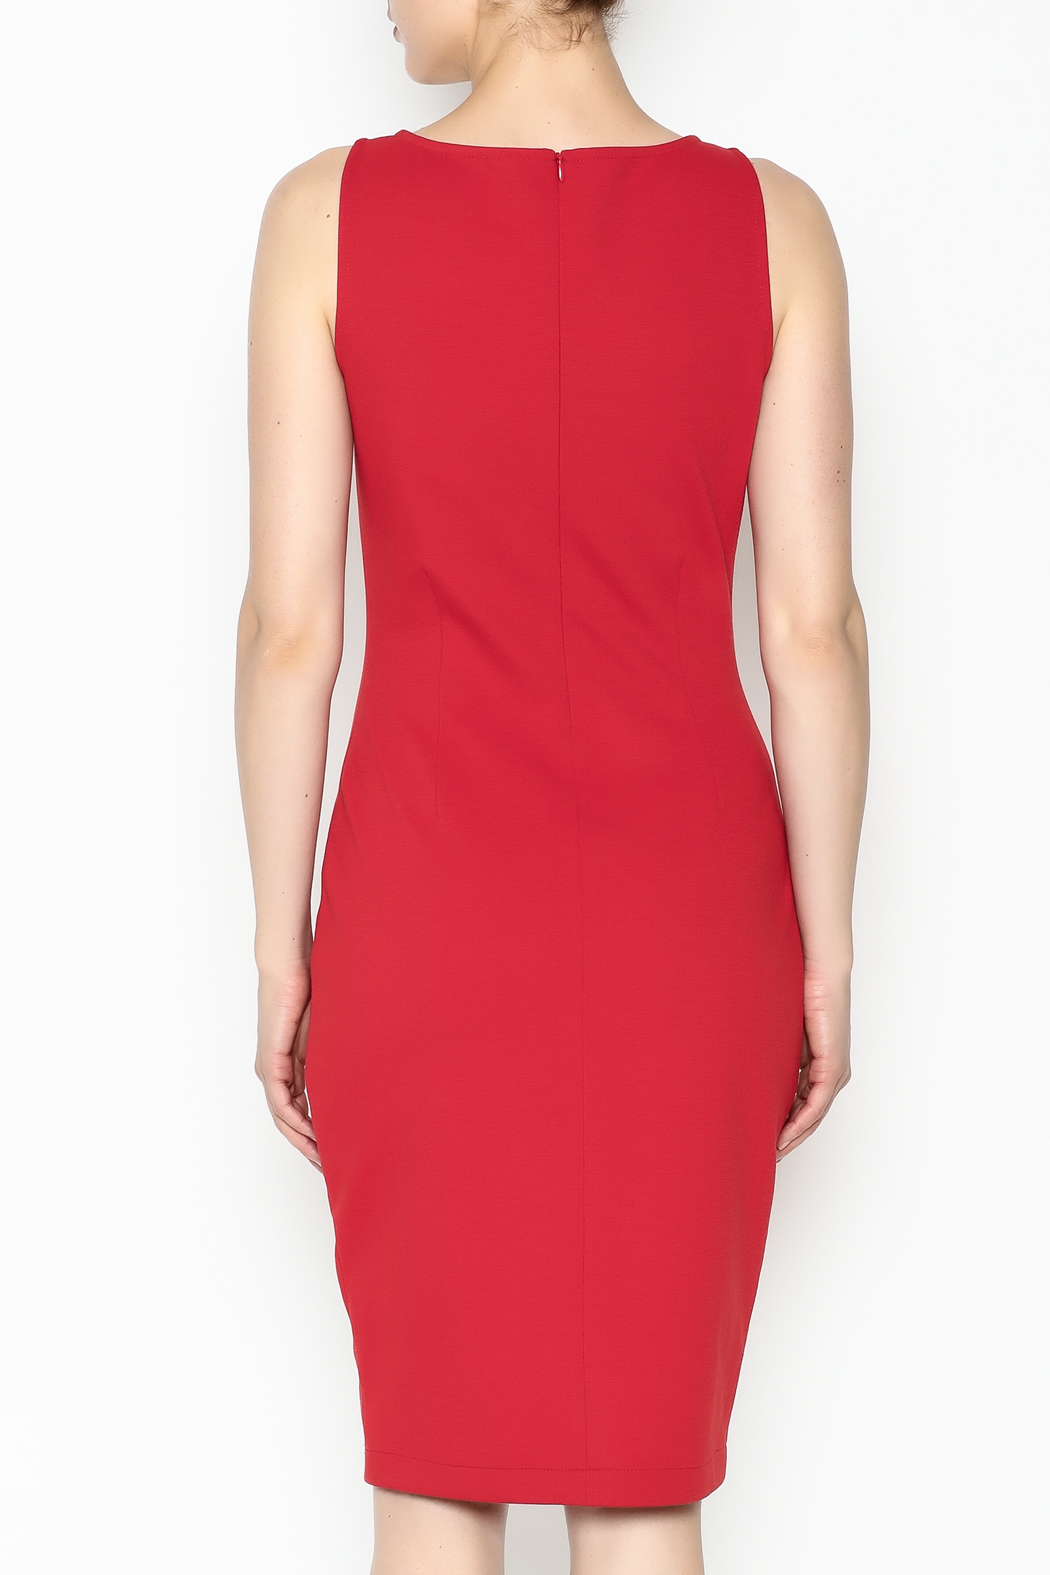 26Line by MLNK Poppy Sheath Dress - Back Cropped Image